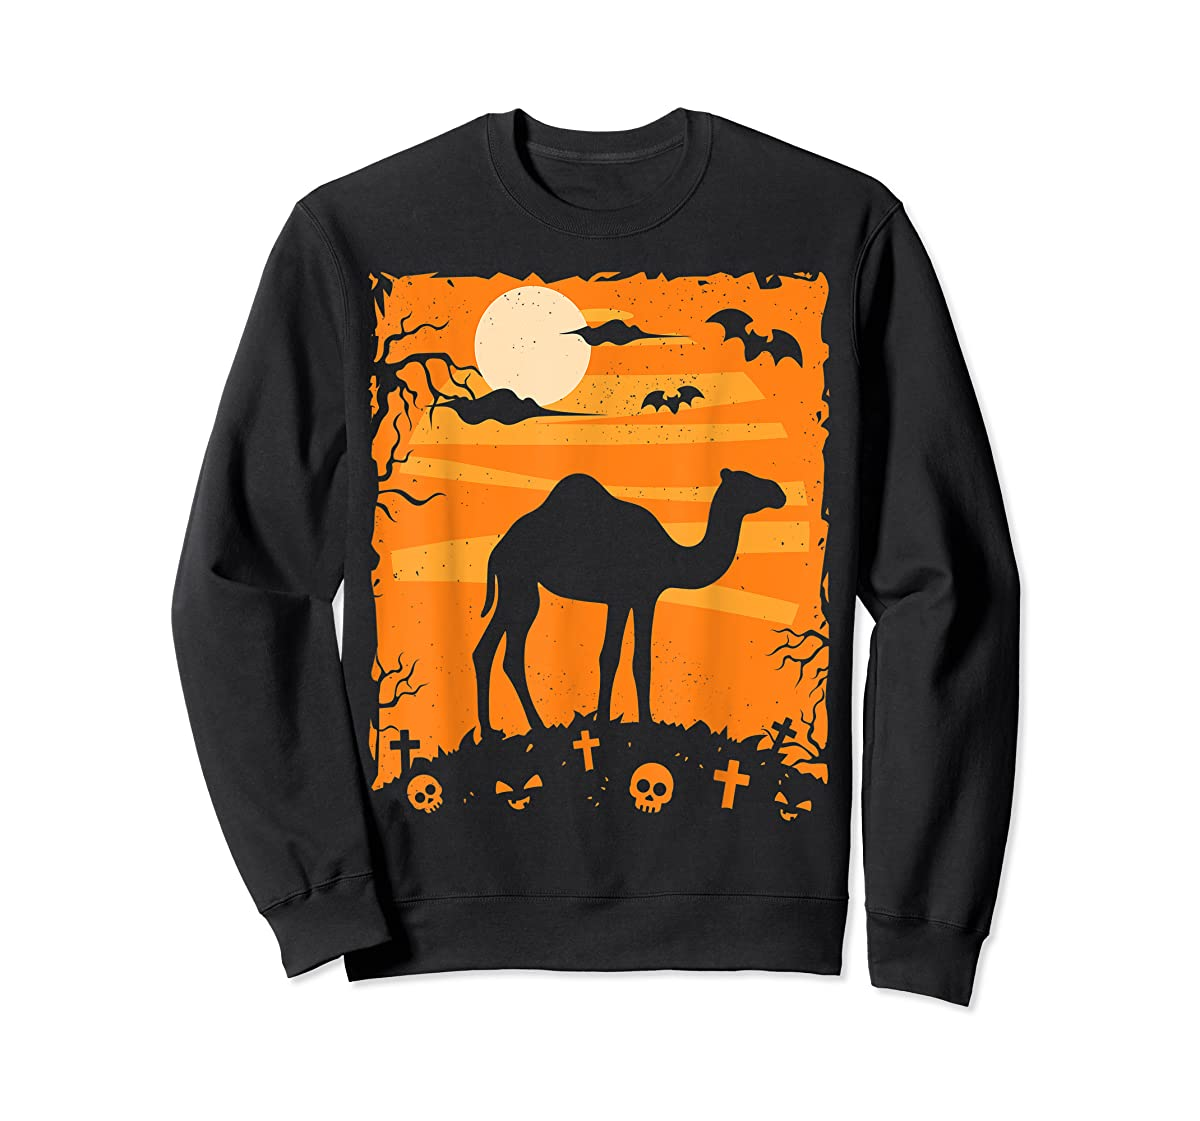 Camel Halloween Costume Animal Funny Pumpkin Outfit Gift T-Shirt-Sweatshirt-Black